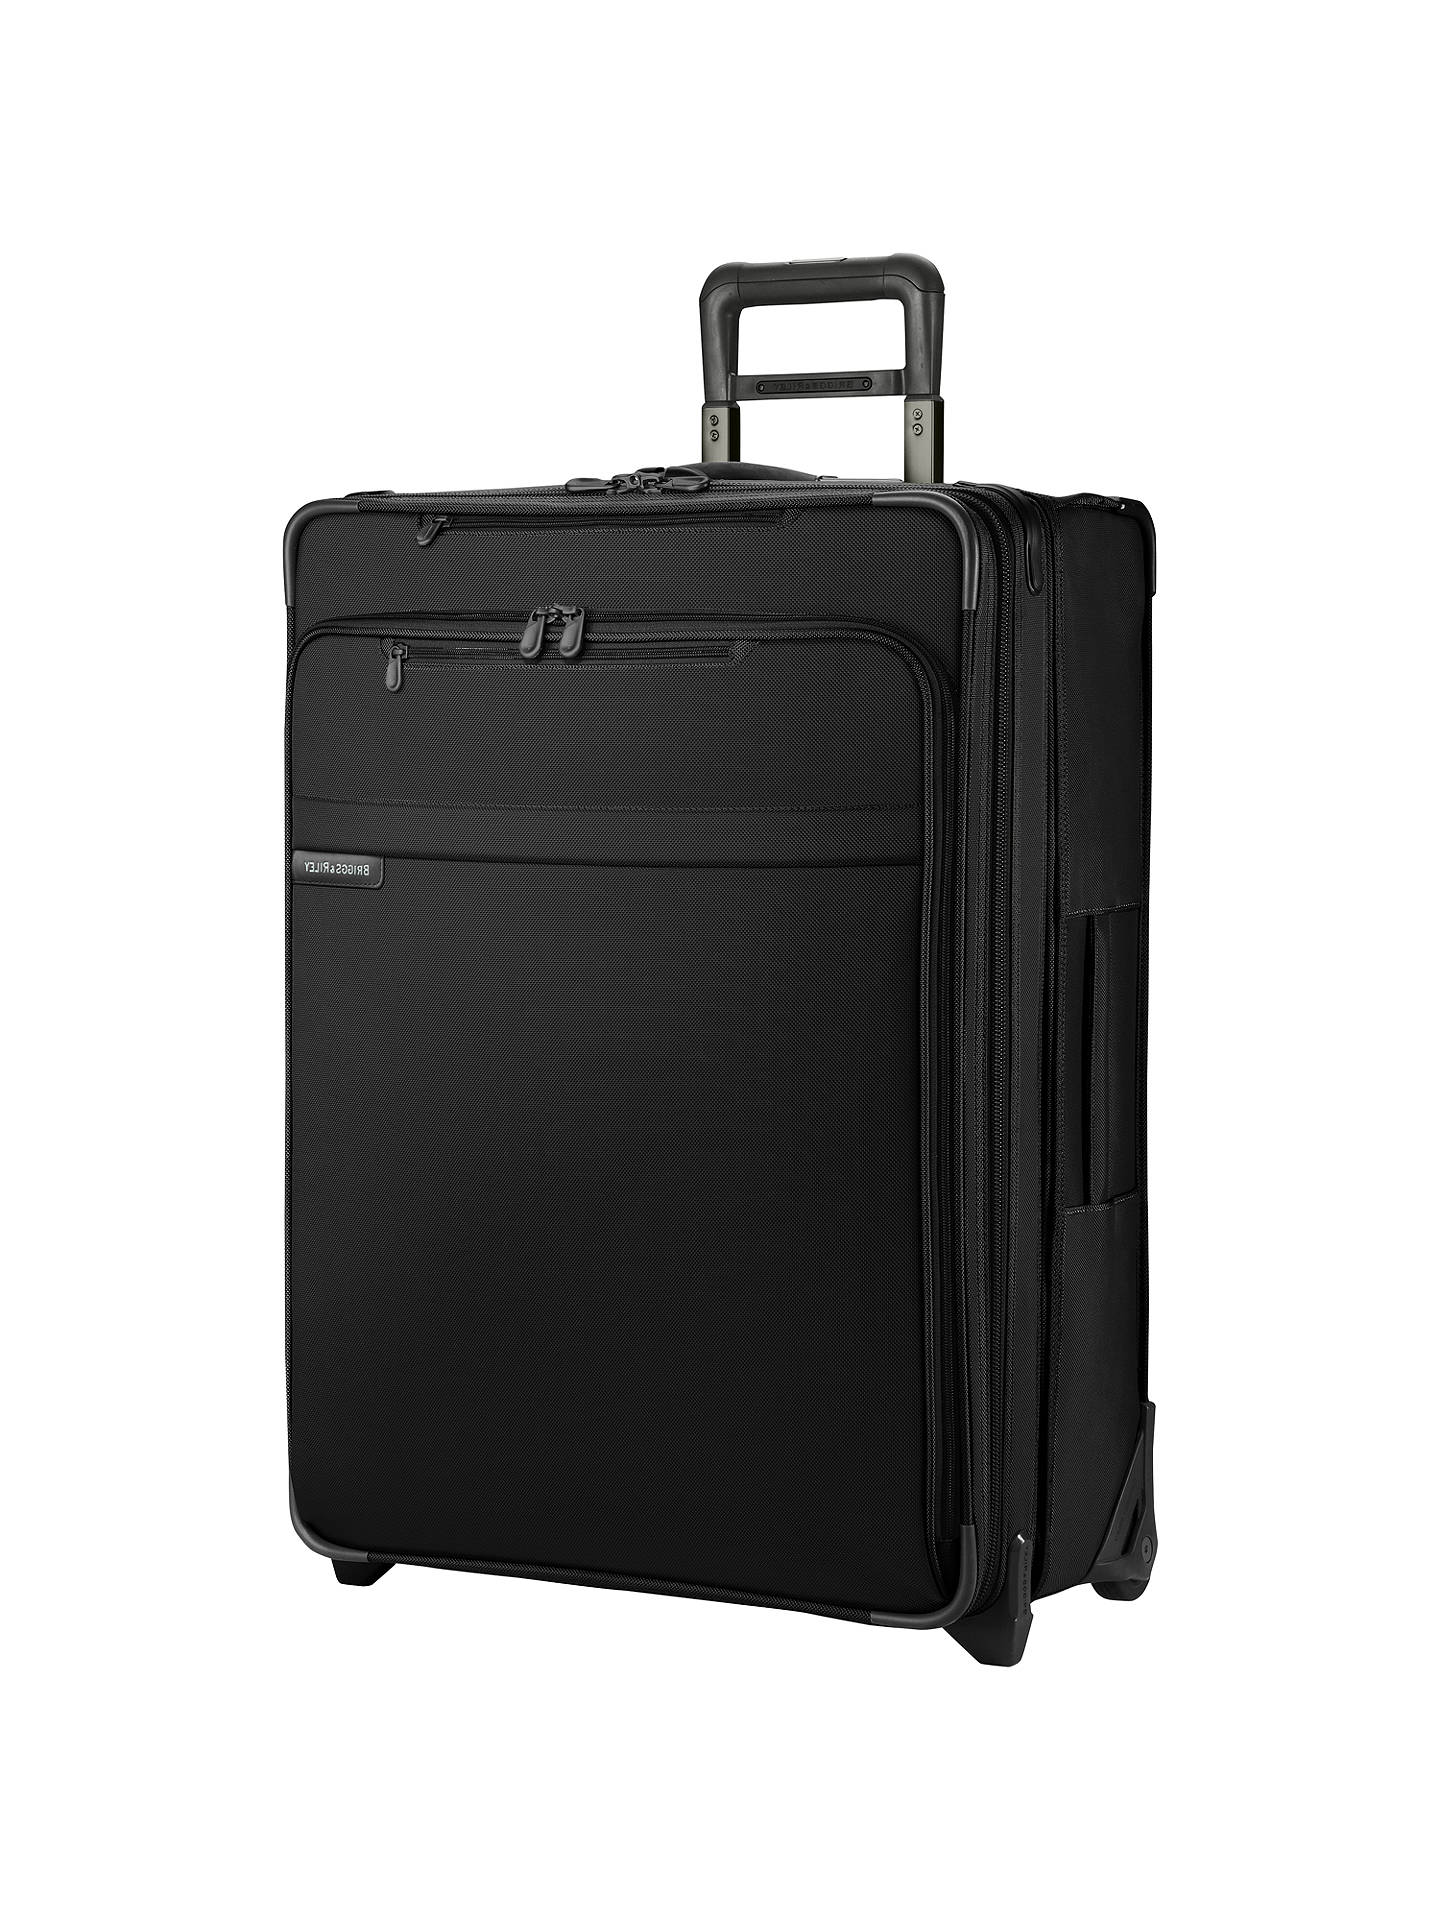 f3ef3a5b86 Briggs   Riley 2-Wheel Large Expandable Upright Suitcase at John ...